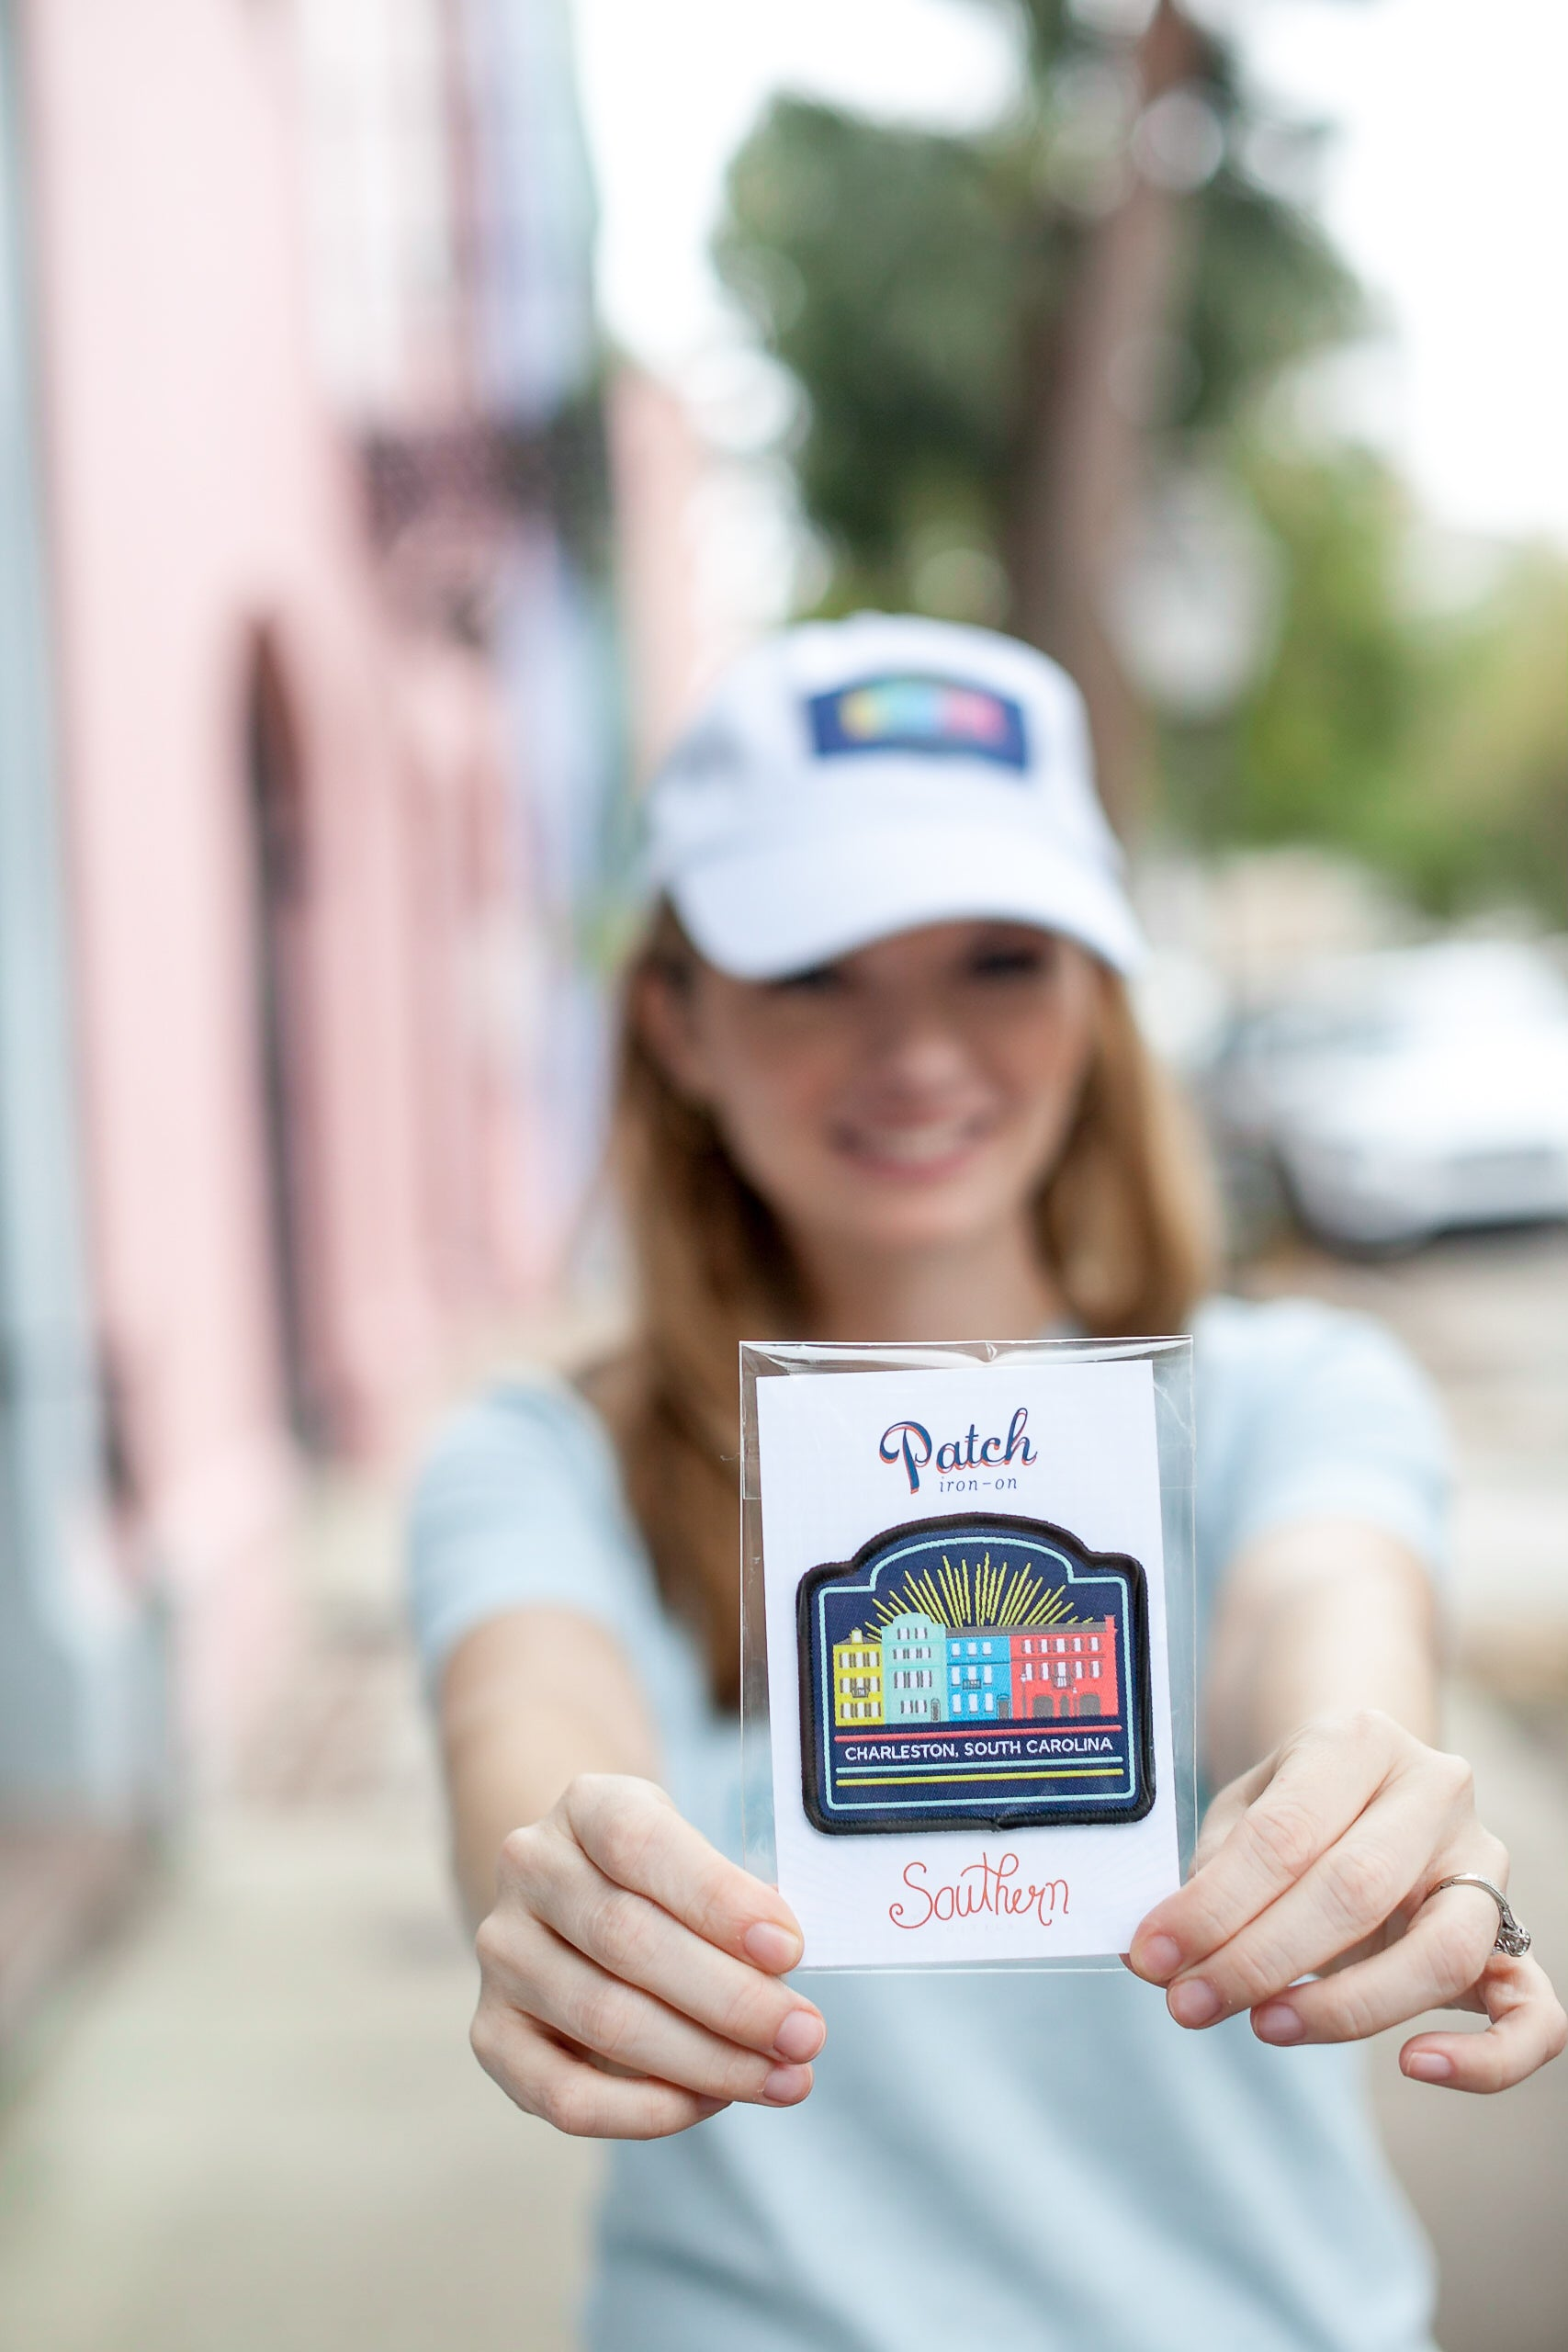 Rainbow row patch makes a great Charleston souvenir.